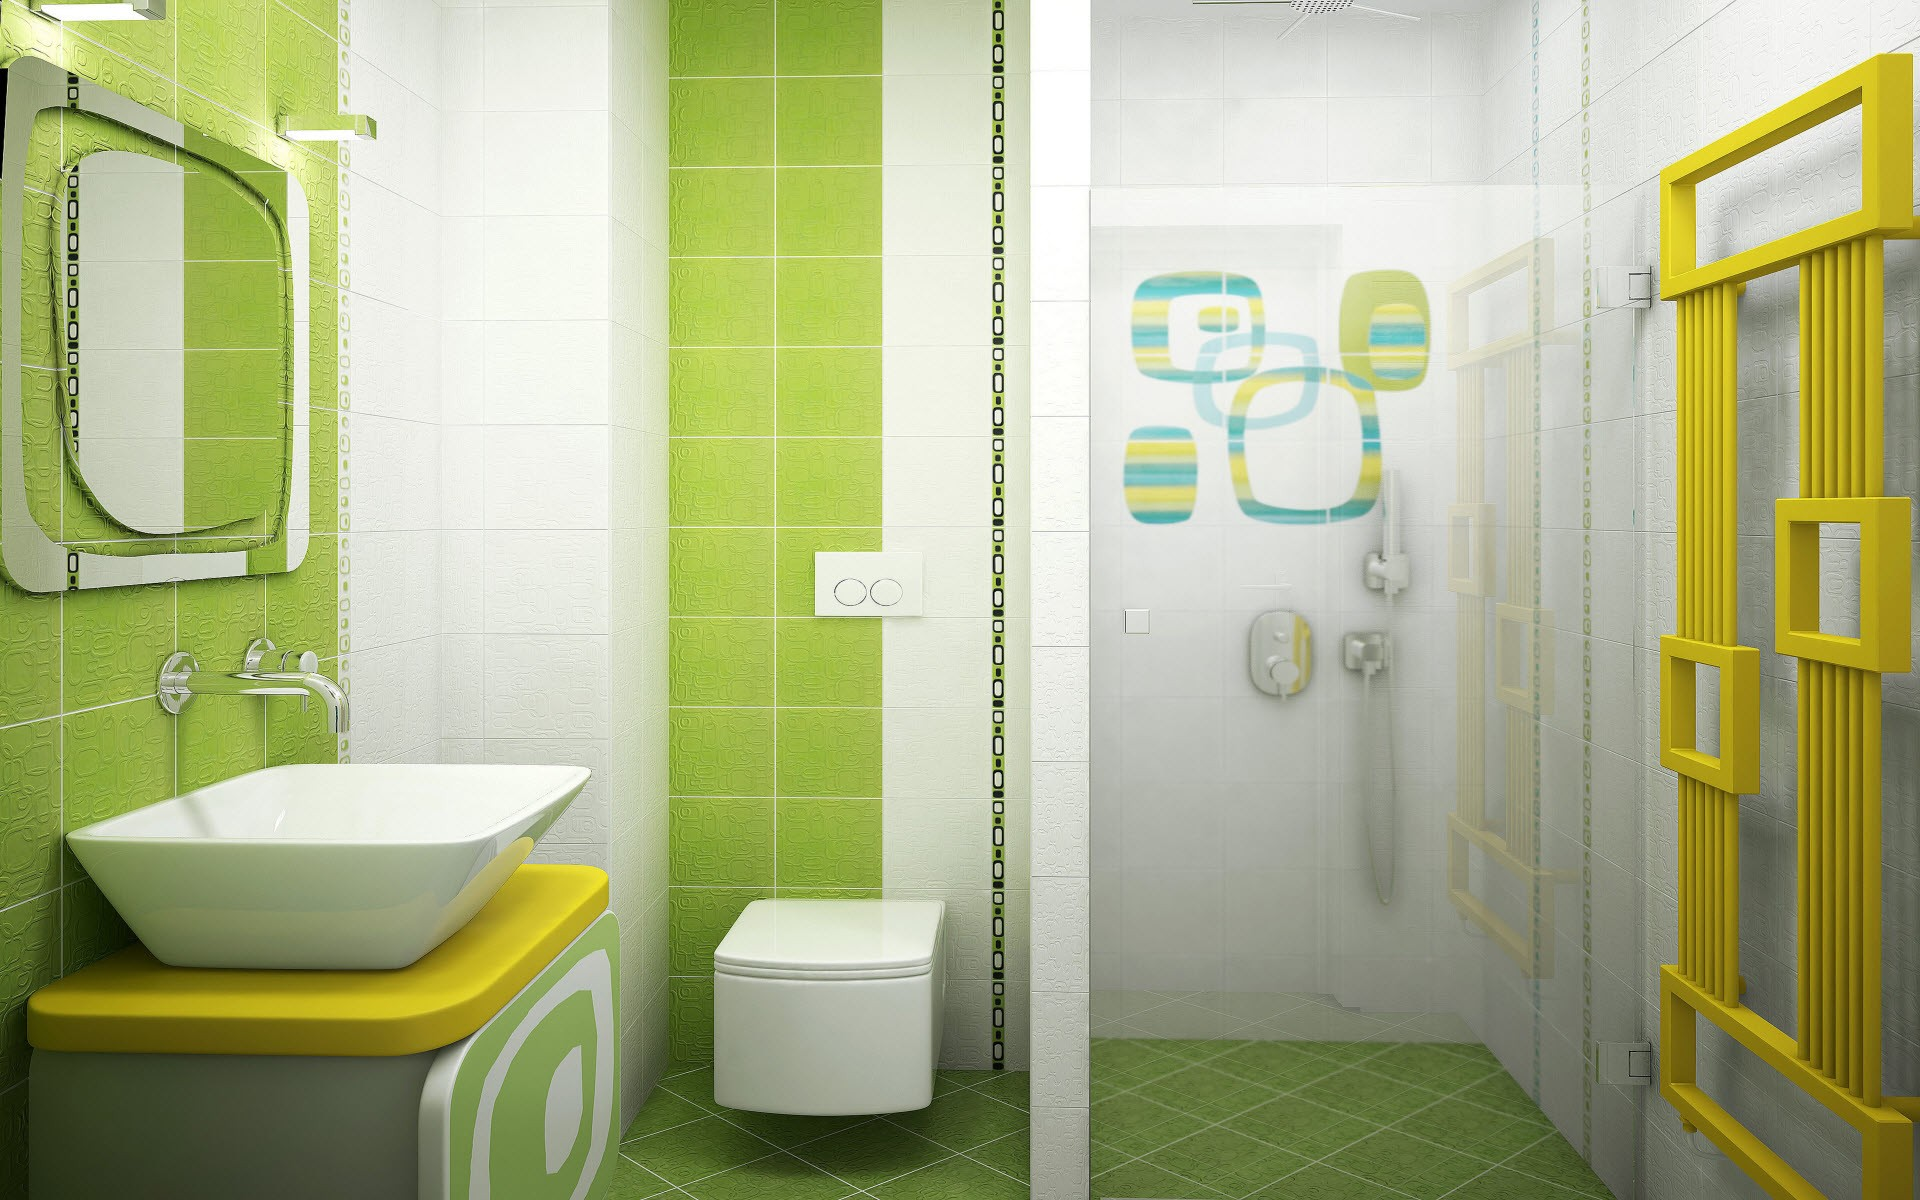 Ordinaire Combine Green And White Tile Wall For Wonderful Room Using Appealing Kids  Bathroom Sets